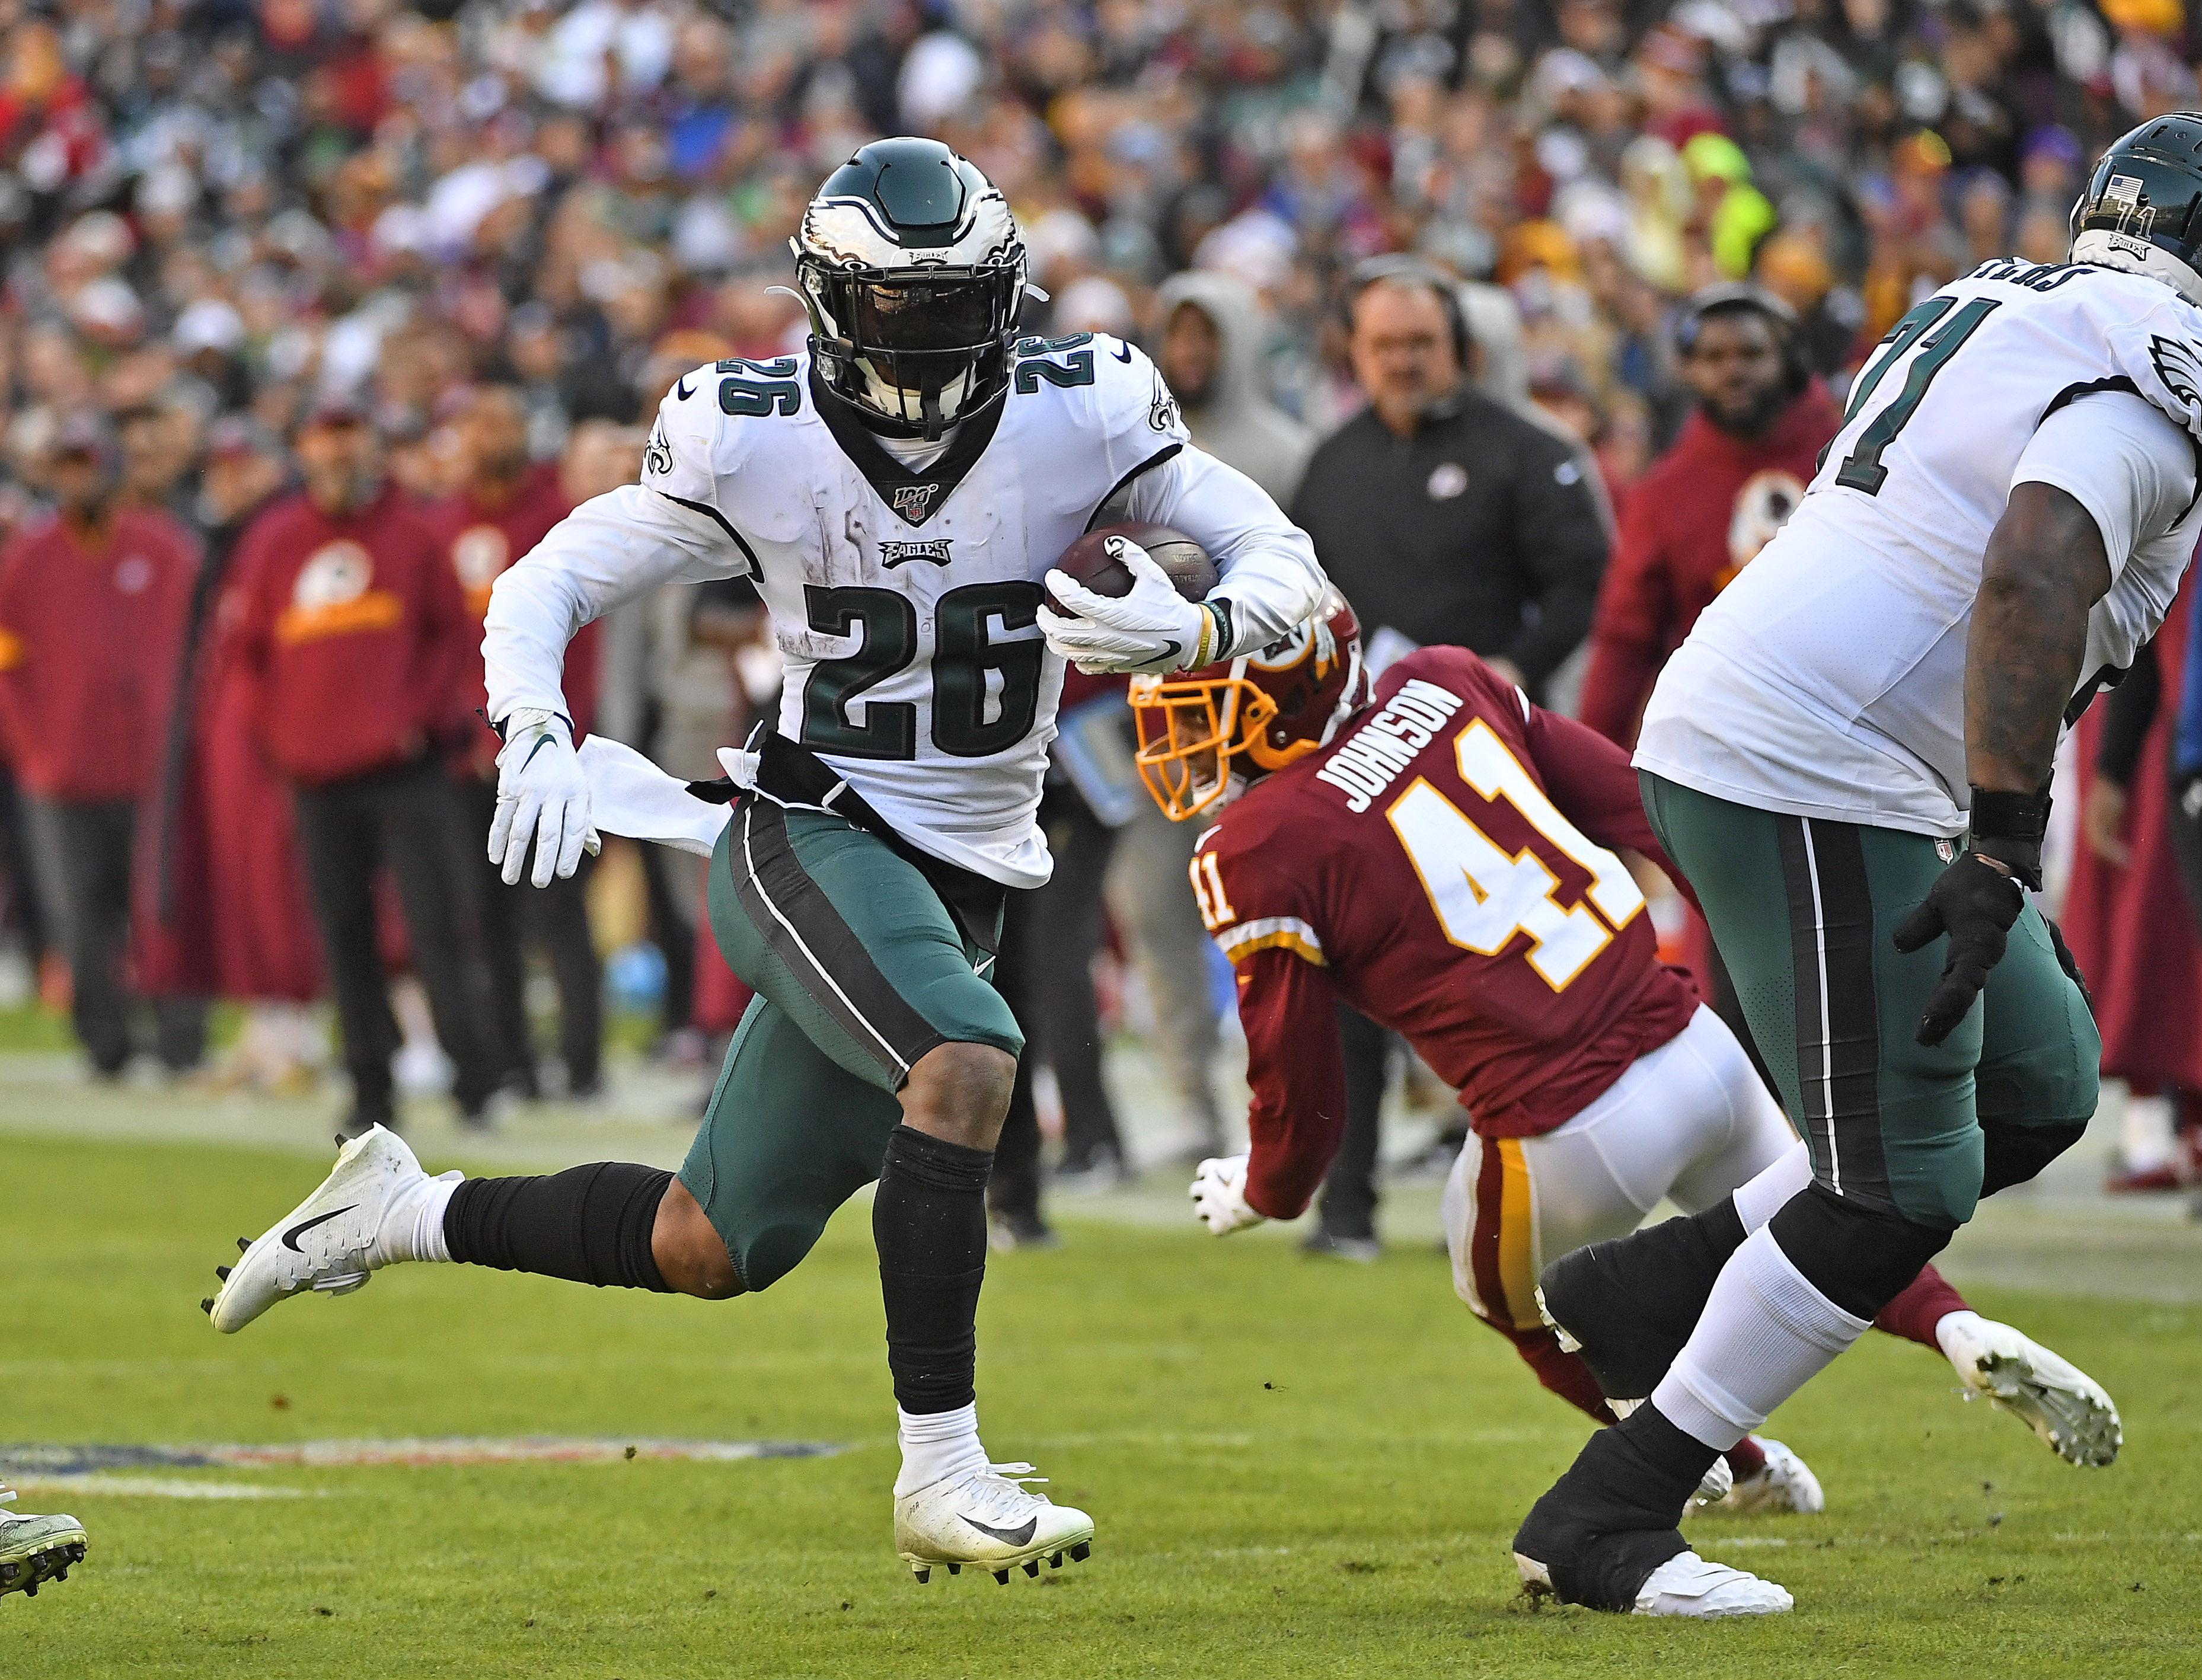 Report: Eagles to open 2020 season against Redskins